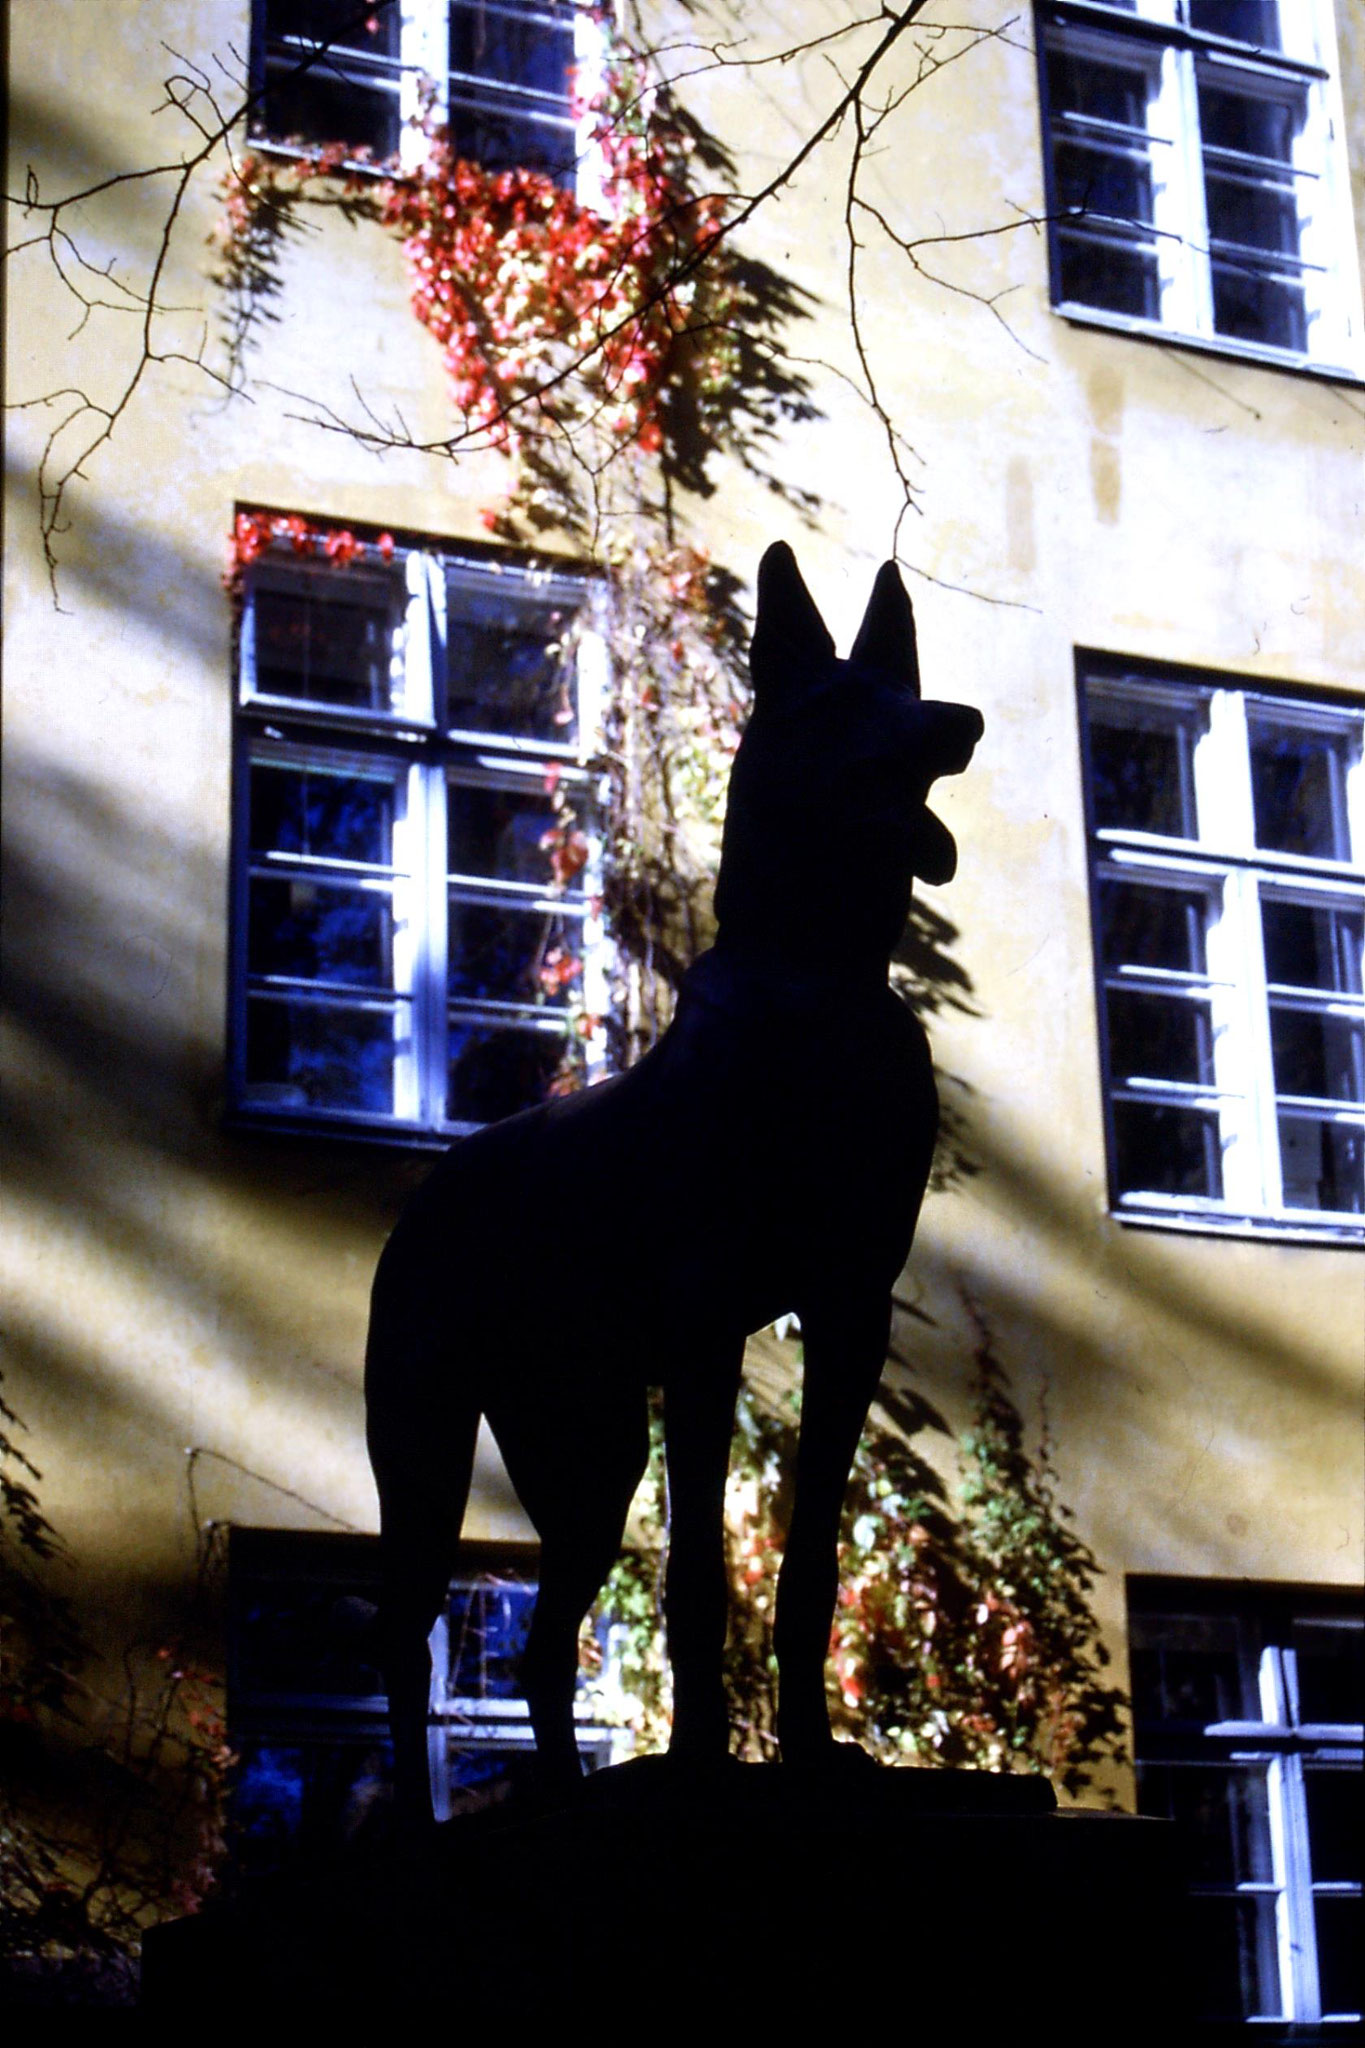 30/9/1988: 33: Dog statue outside Salus, public health institute